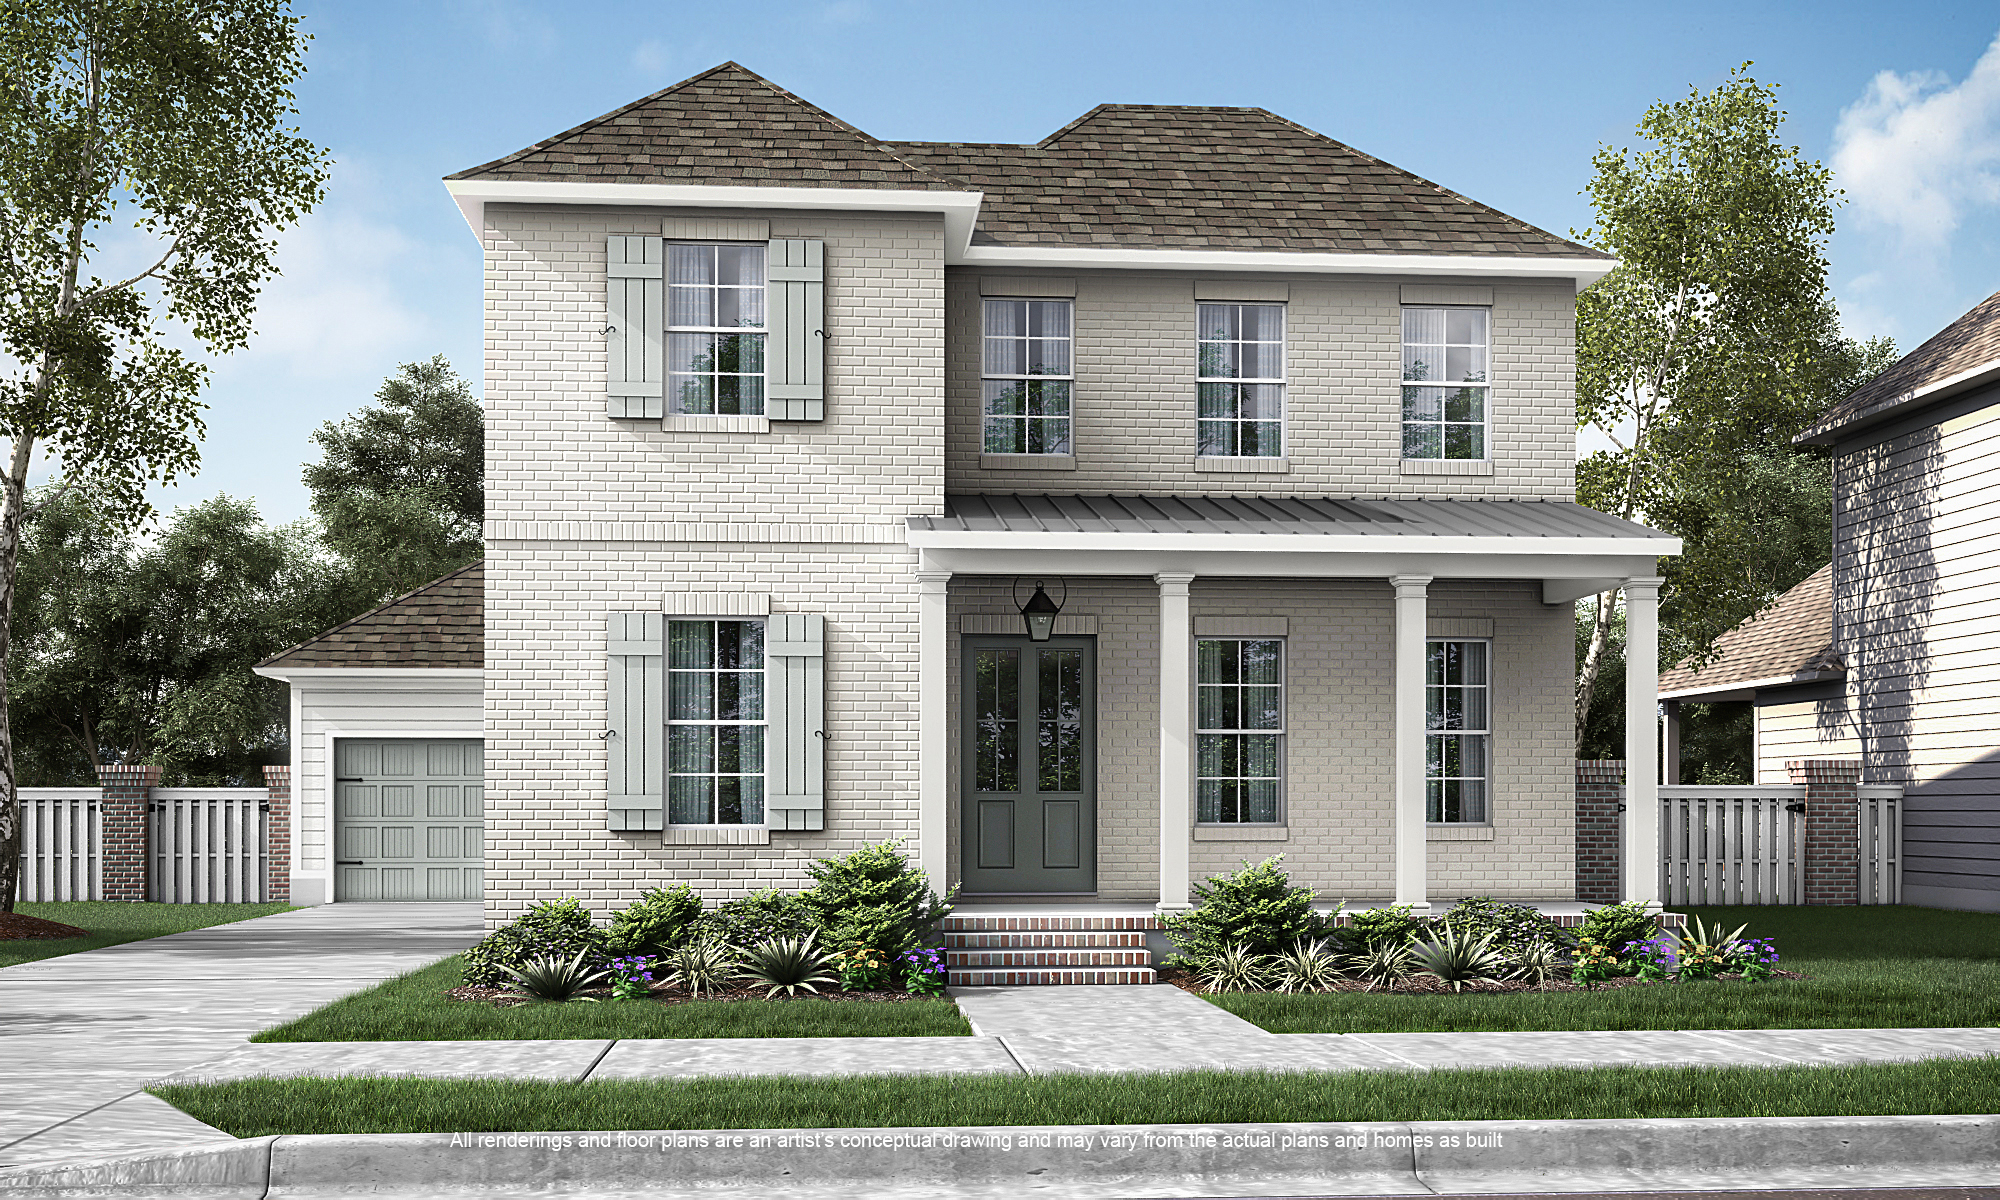 Roosevelt - 2,681 SF — Starting from $409,900